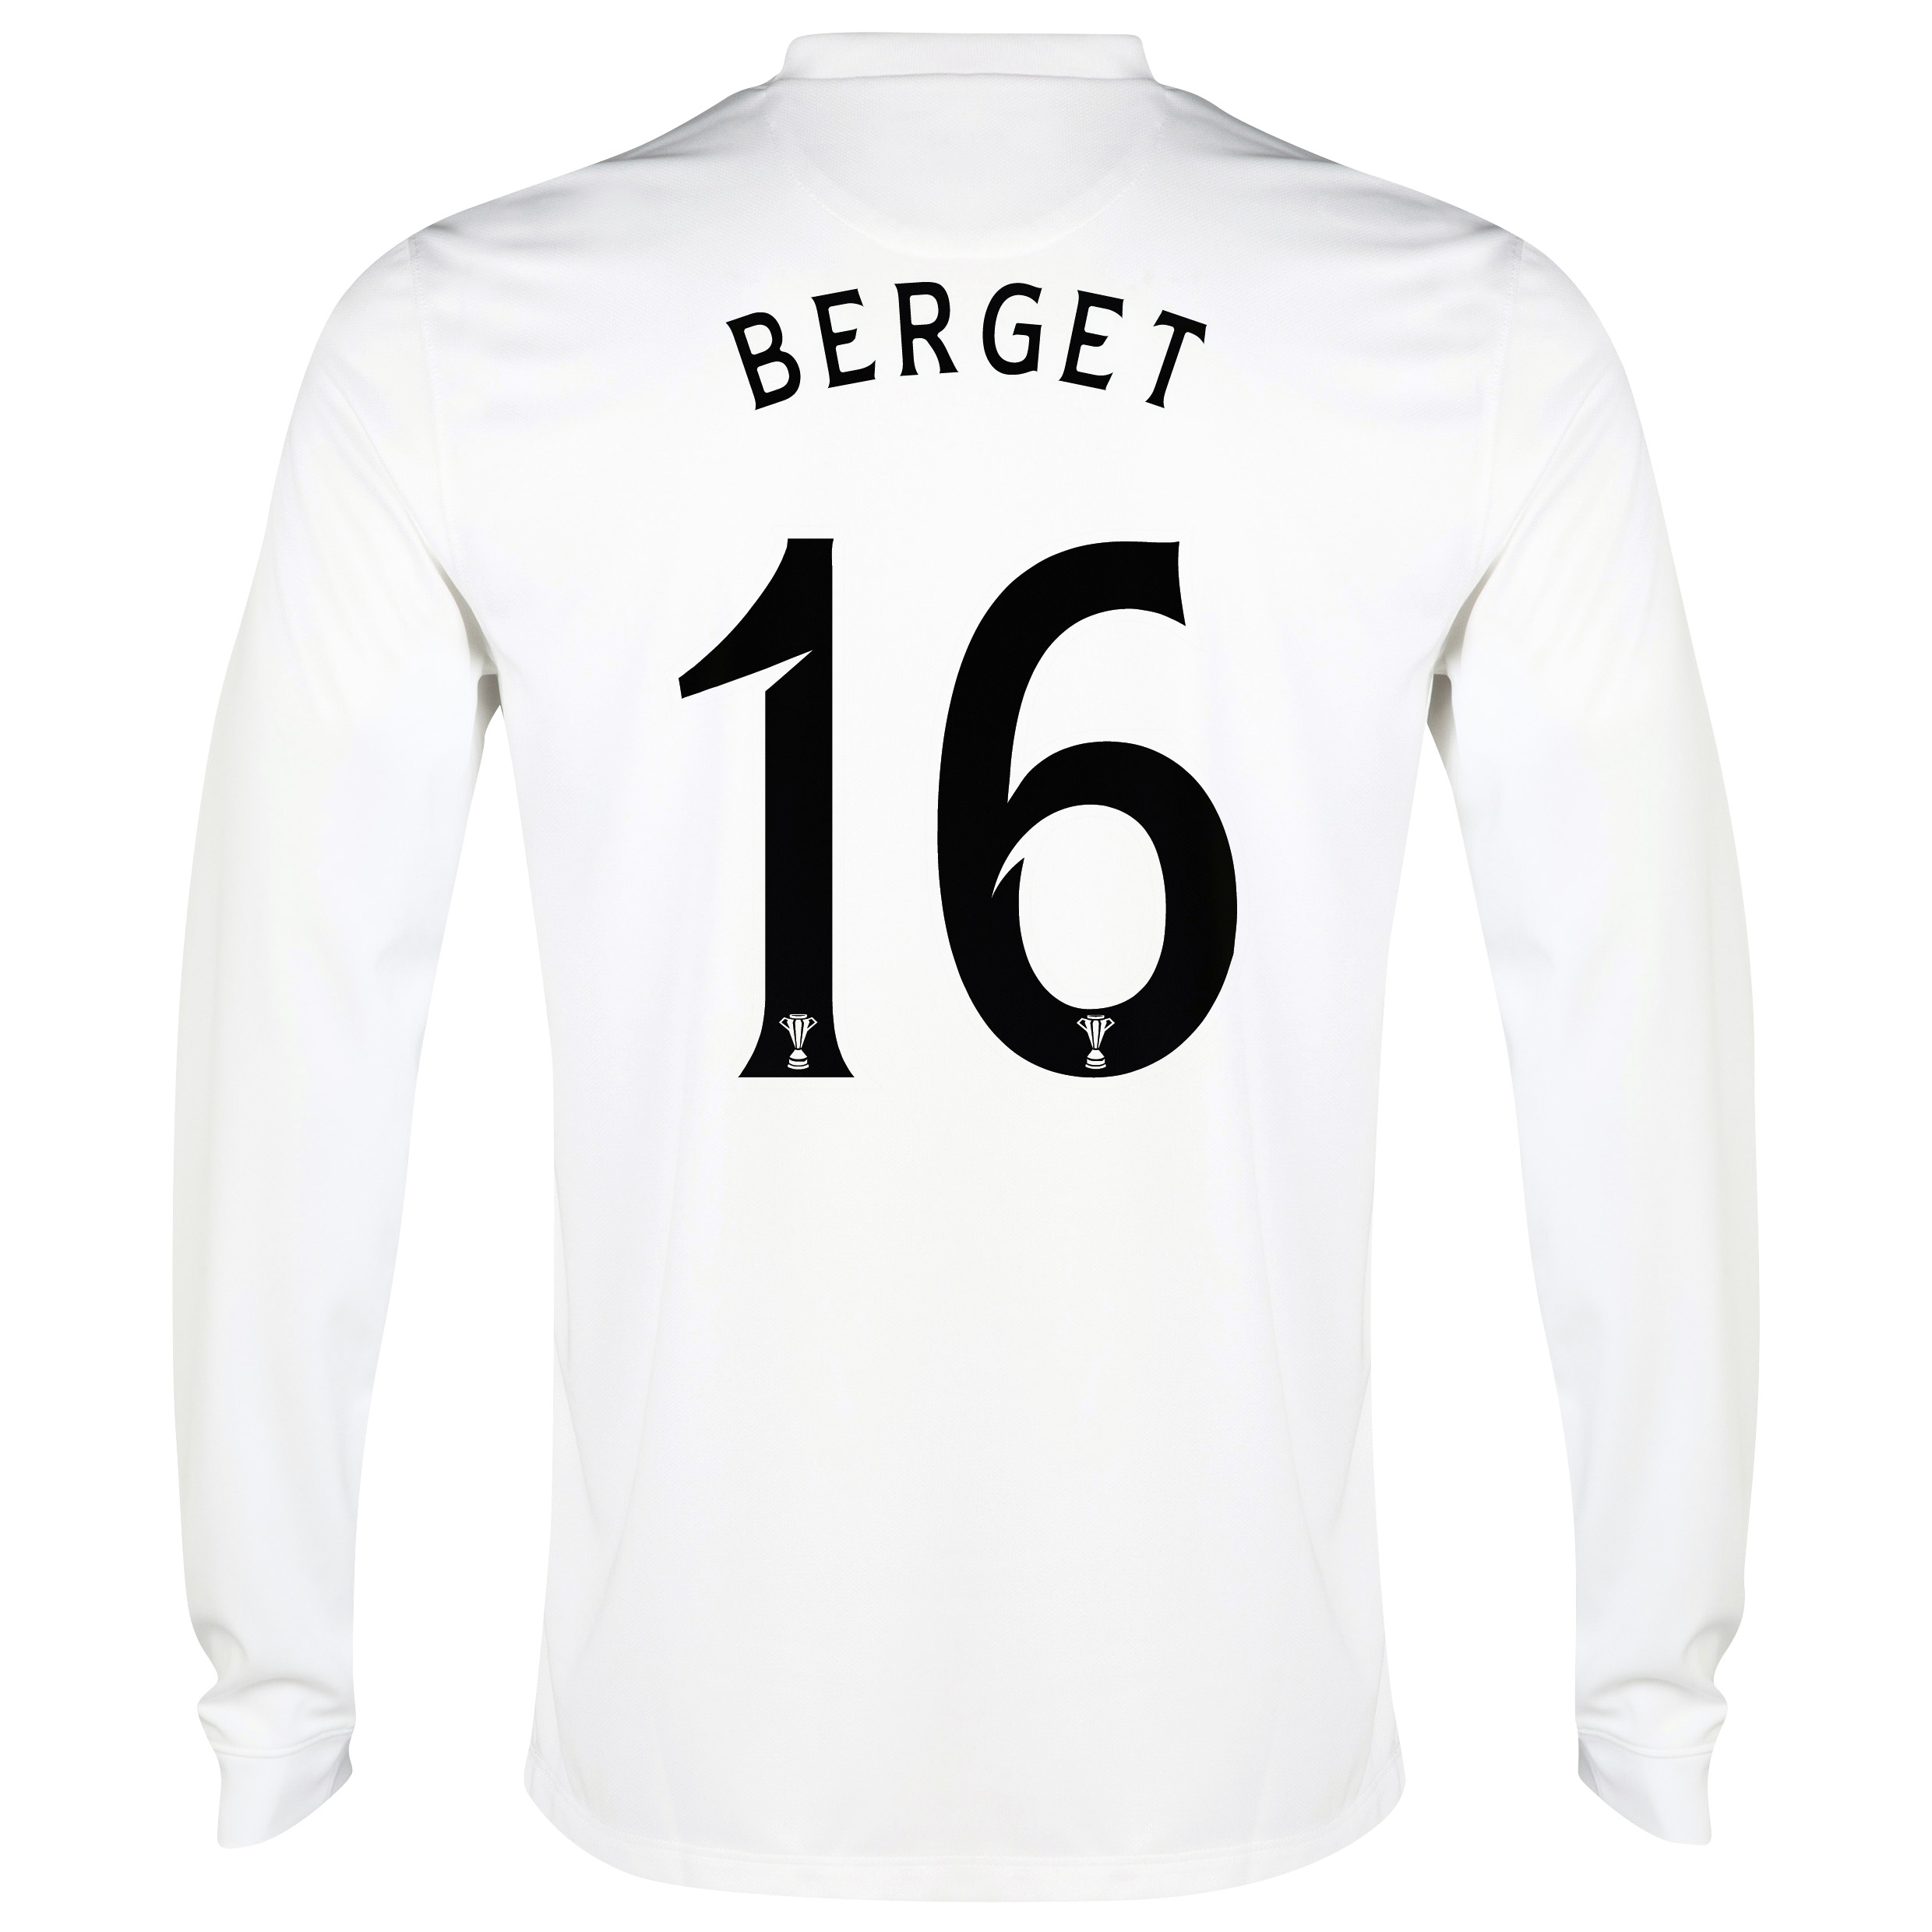 Celtic 3rd Shirt 2014/15 - Long Sleeved - With Sponsor White with Berget 16 printing